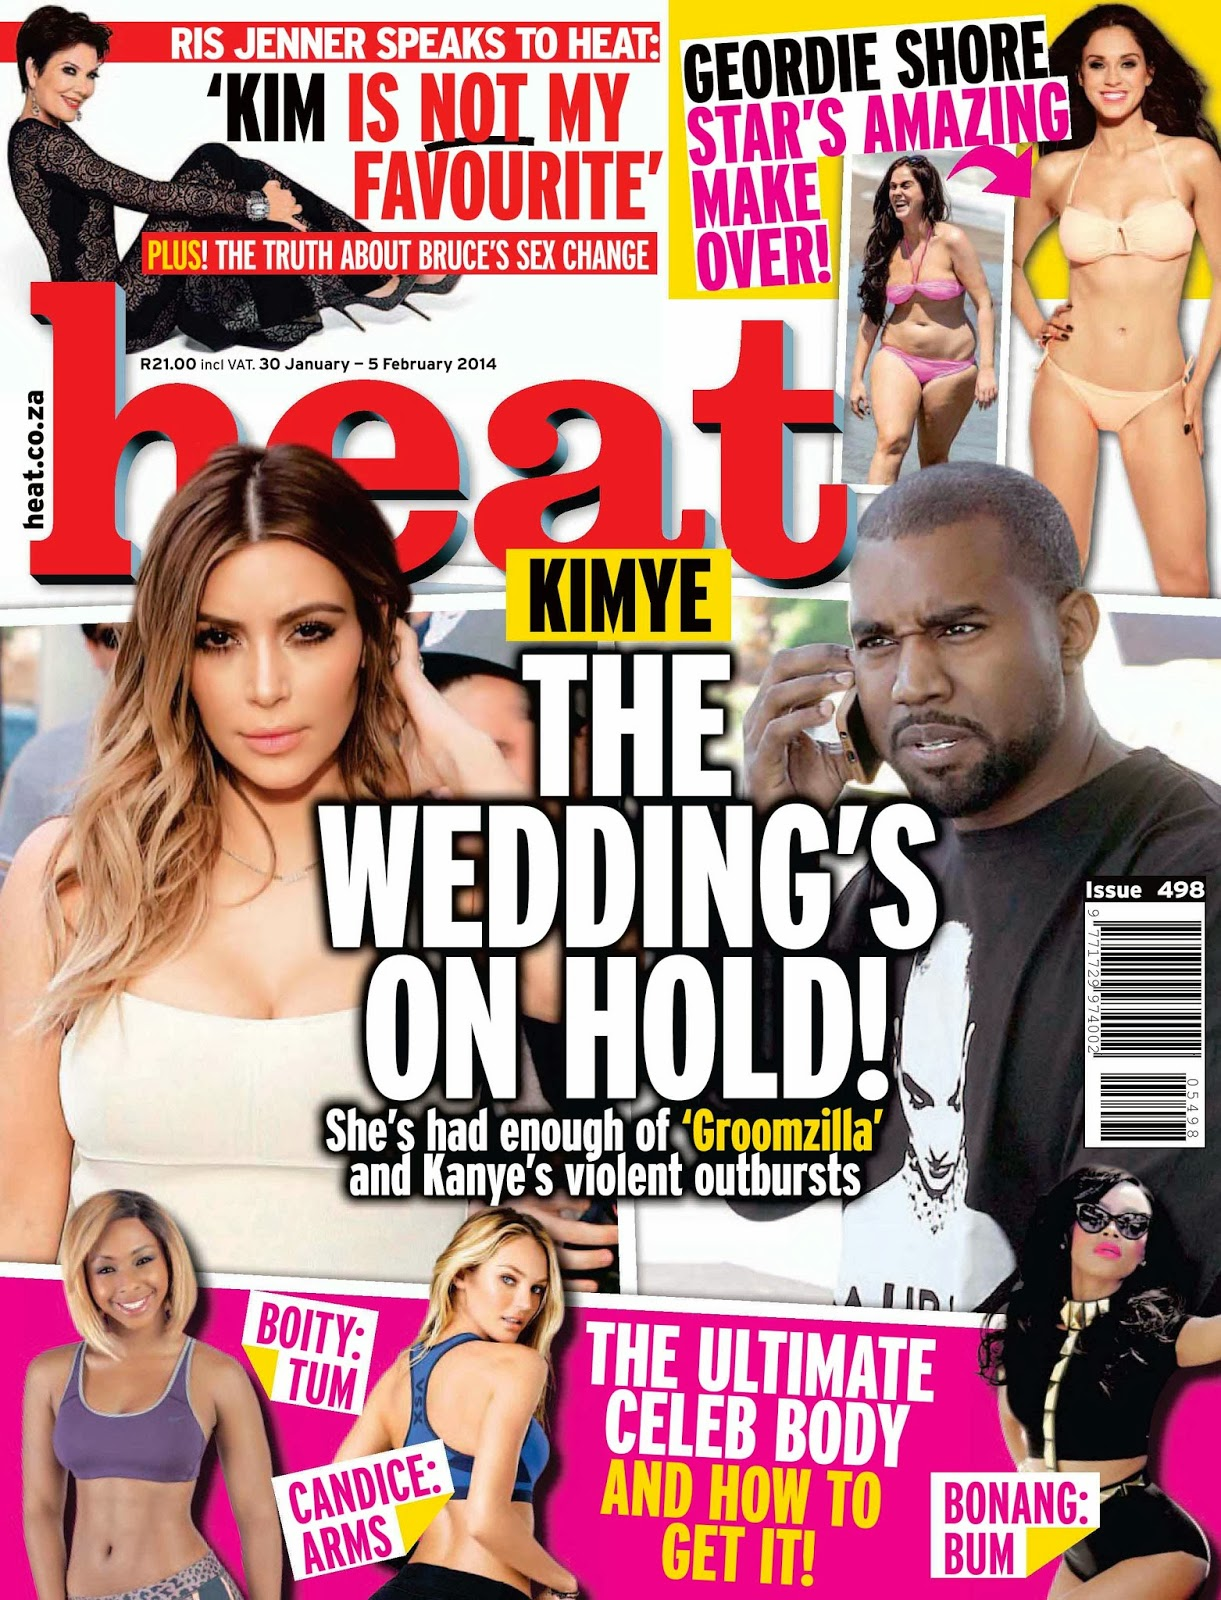 Magazine Cover : Kim Kardashian and Kanye West Magazine Photoshoot Pics on Heat Magazine South Africa January 2014 Issue